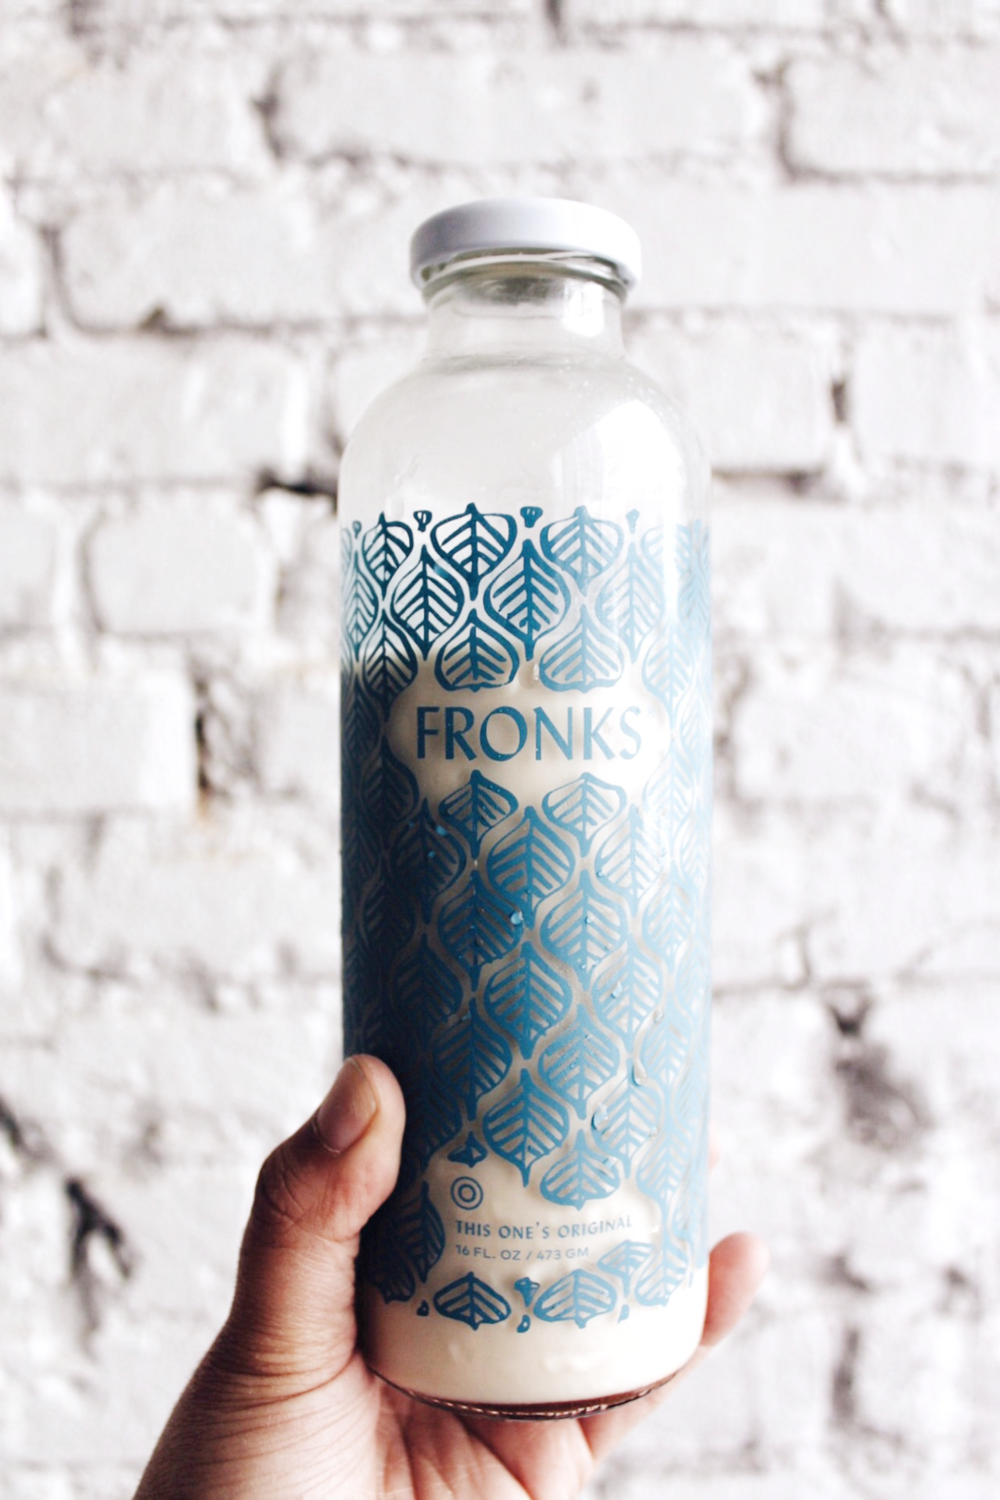 Fresh Fronks - Non-Dairy Milk - Vegan Milk - Nut Milk - www.tresgigi.com